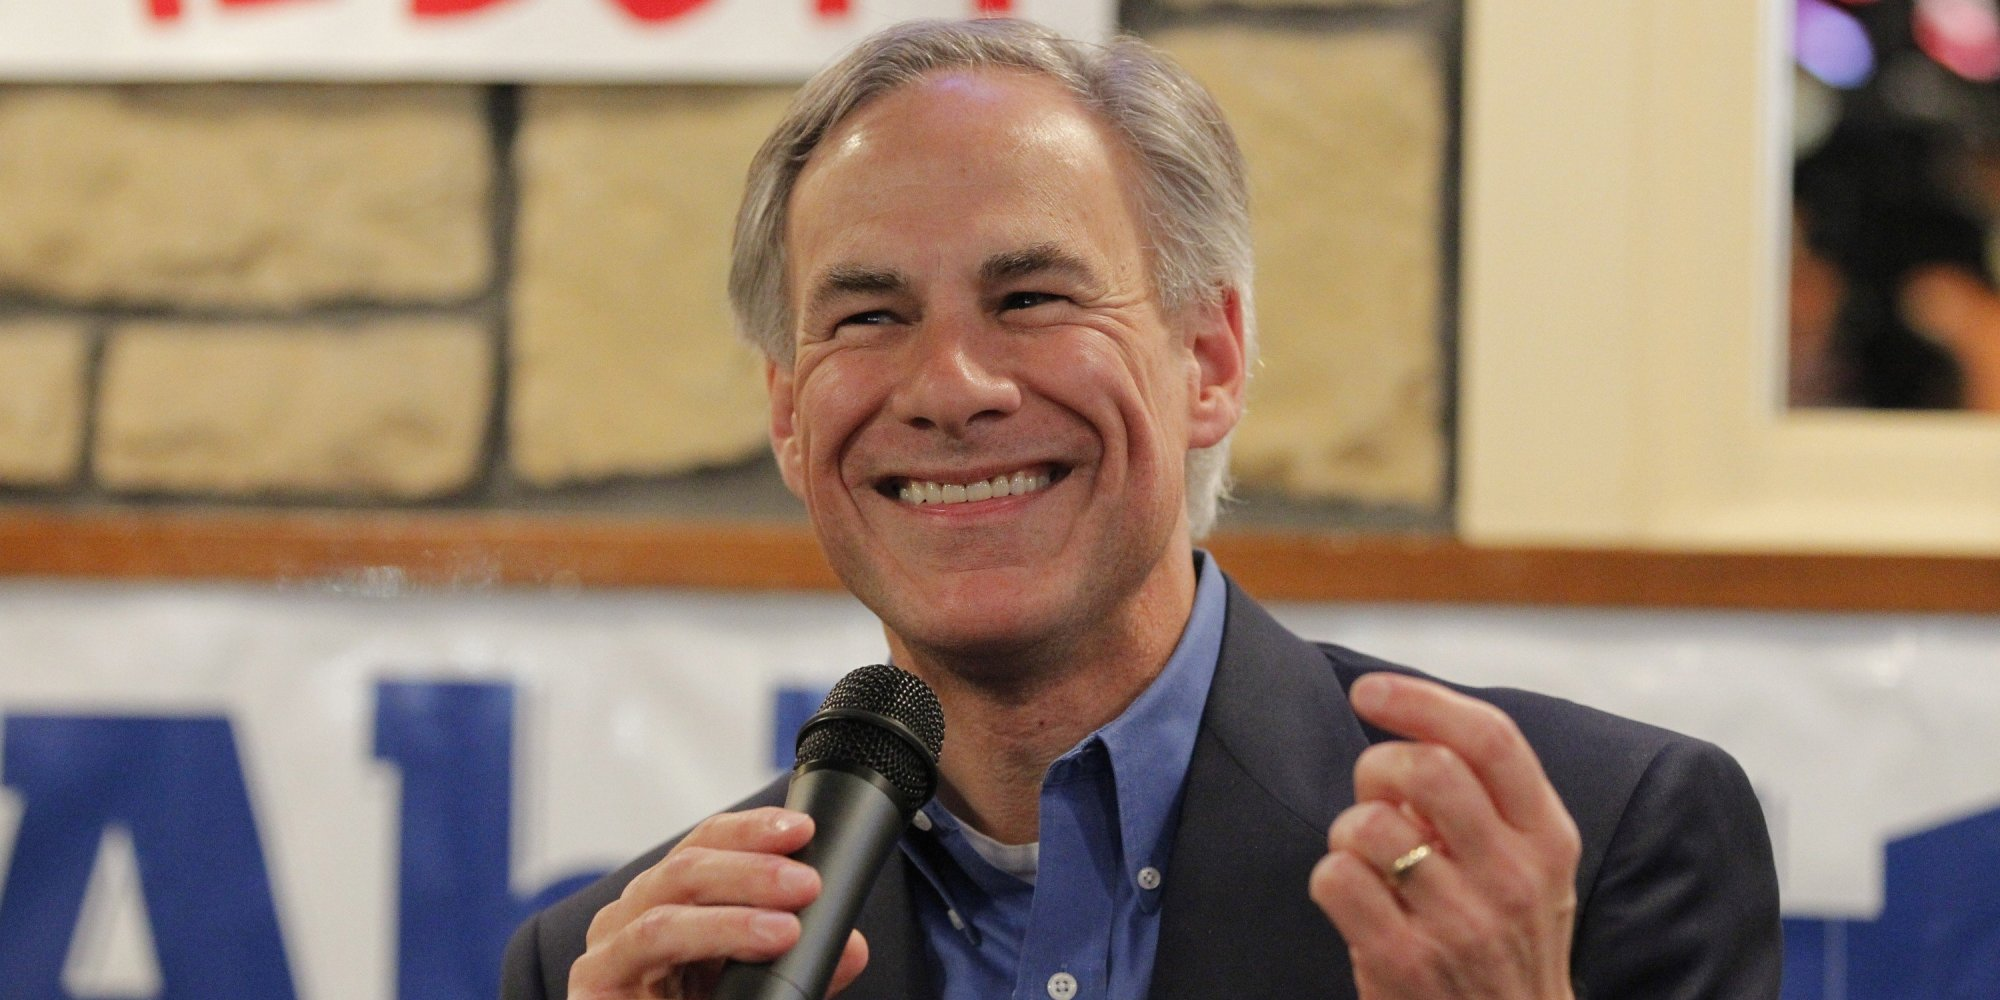 Superb img of Greg Abbott Played Key Role In Denying Log Cabin Republicans A Spot At  with #313C6B color and 2000x1000 pixels